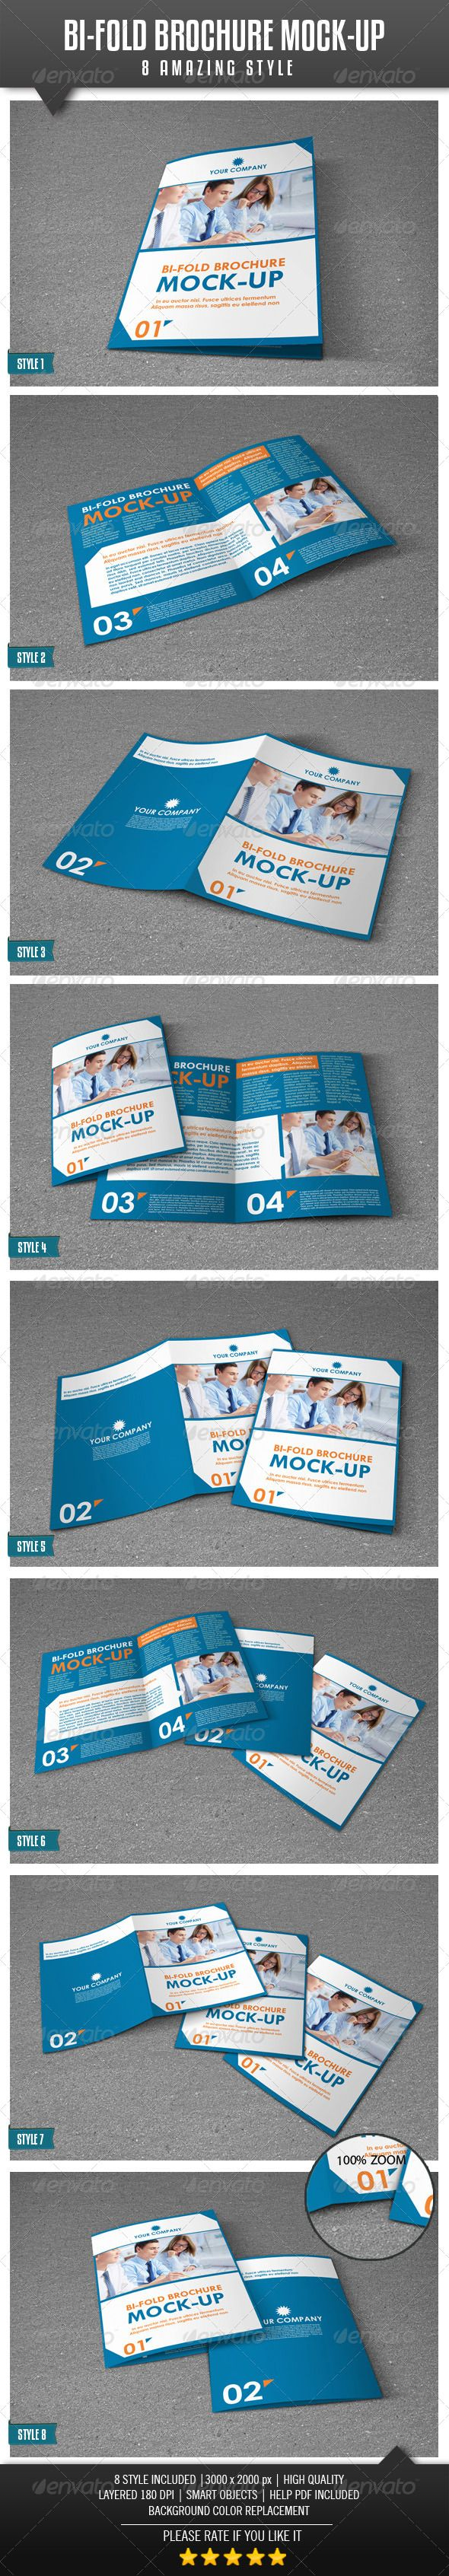 BiFold A4 Brochure Mockup — Photoshop PSD #realistic #business • Available here → https://graphicriver.net/item/bifold-a4-brochure-mockup/4443632?ref=pxcr